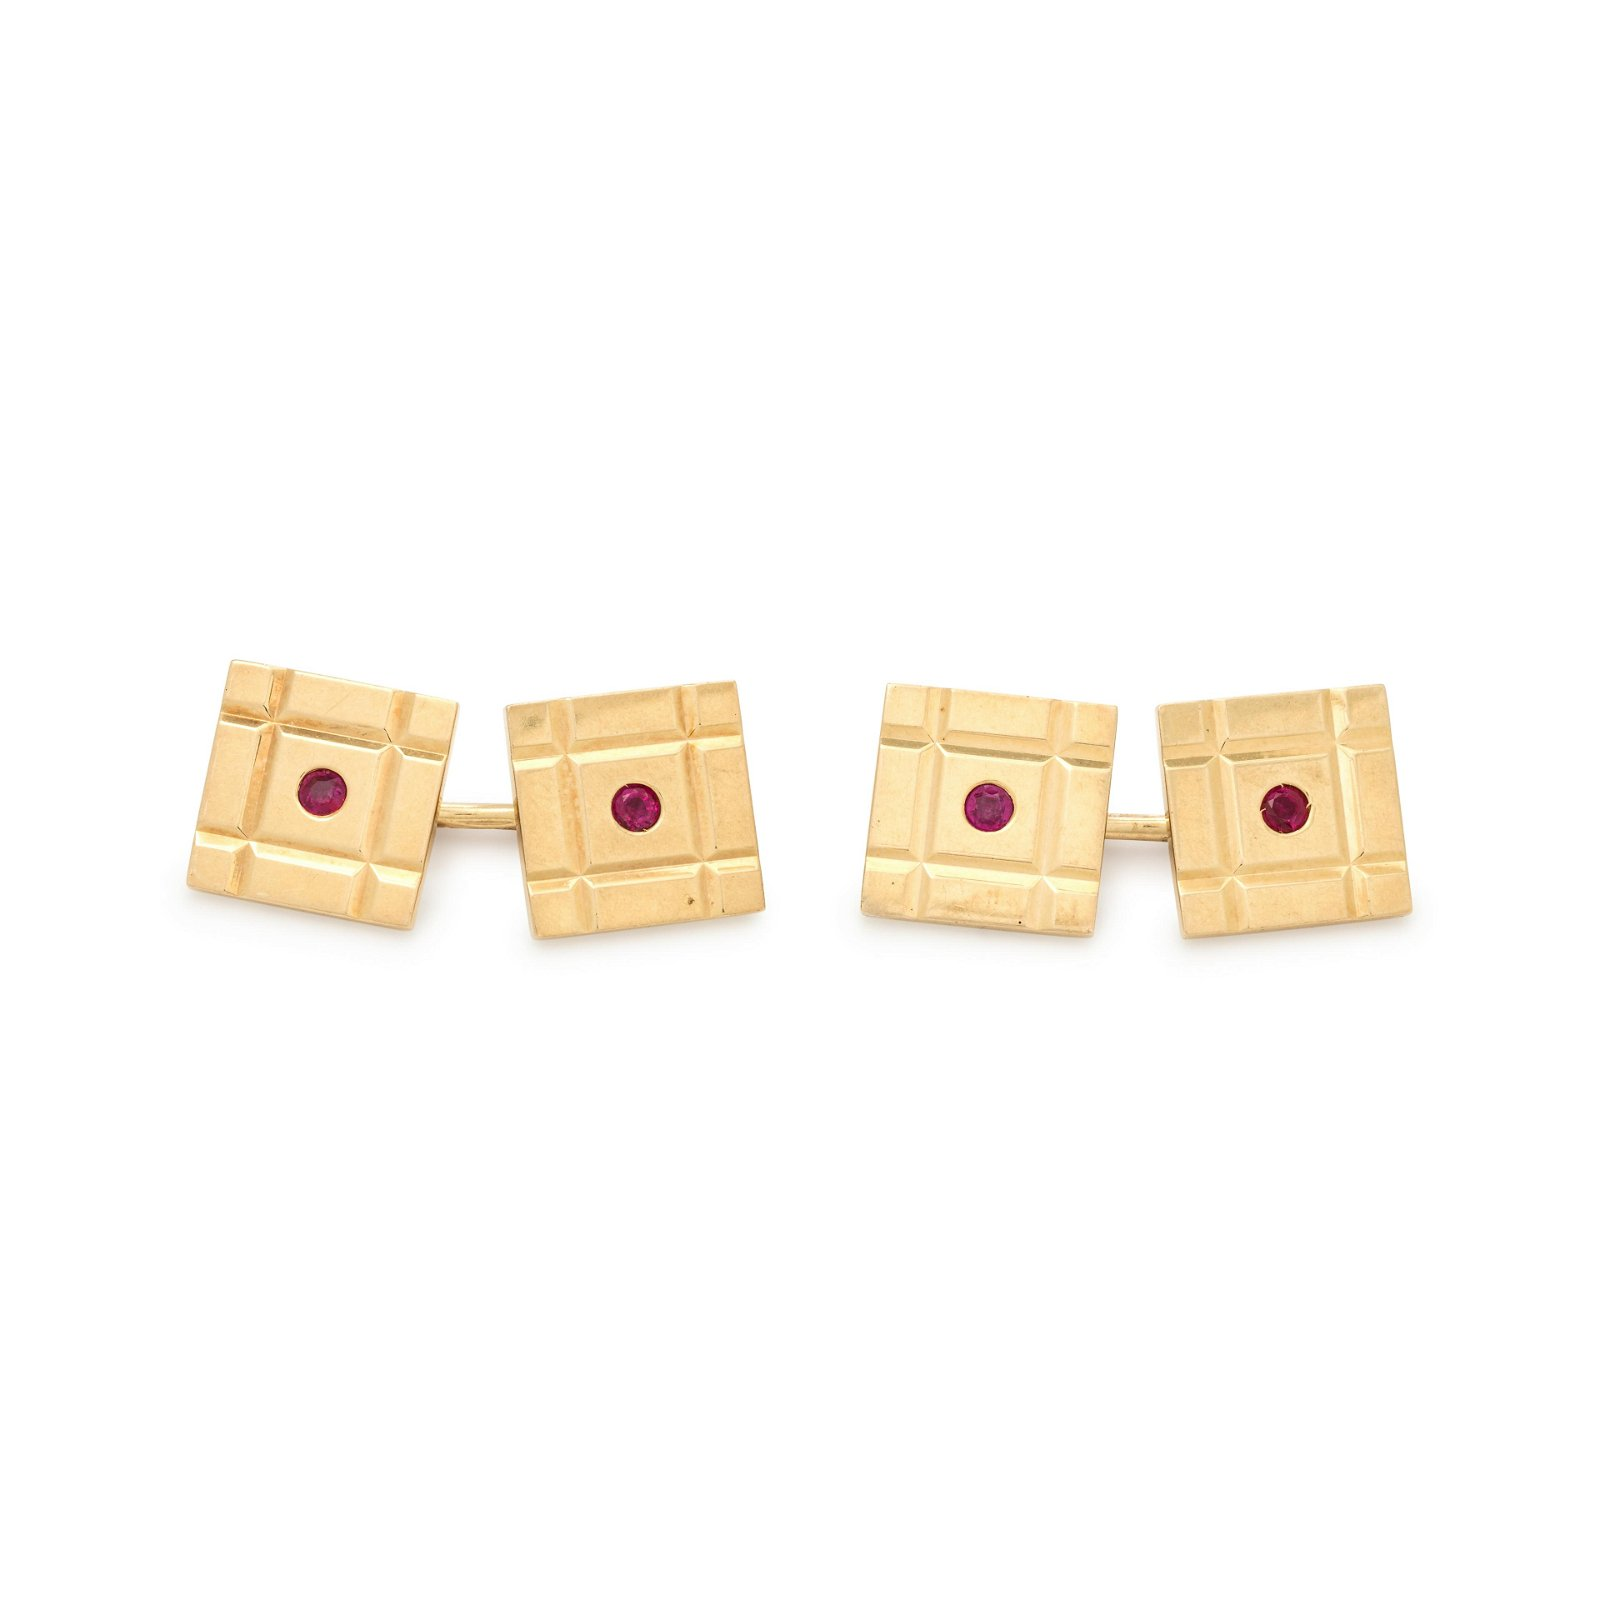 TIFFANY & CO., YELLOW GOLD AND RUBY CUFFLINKS